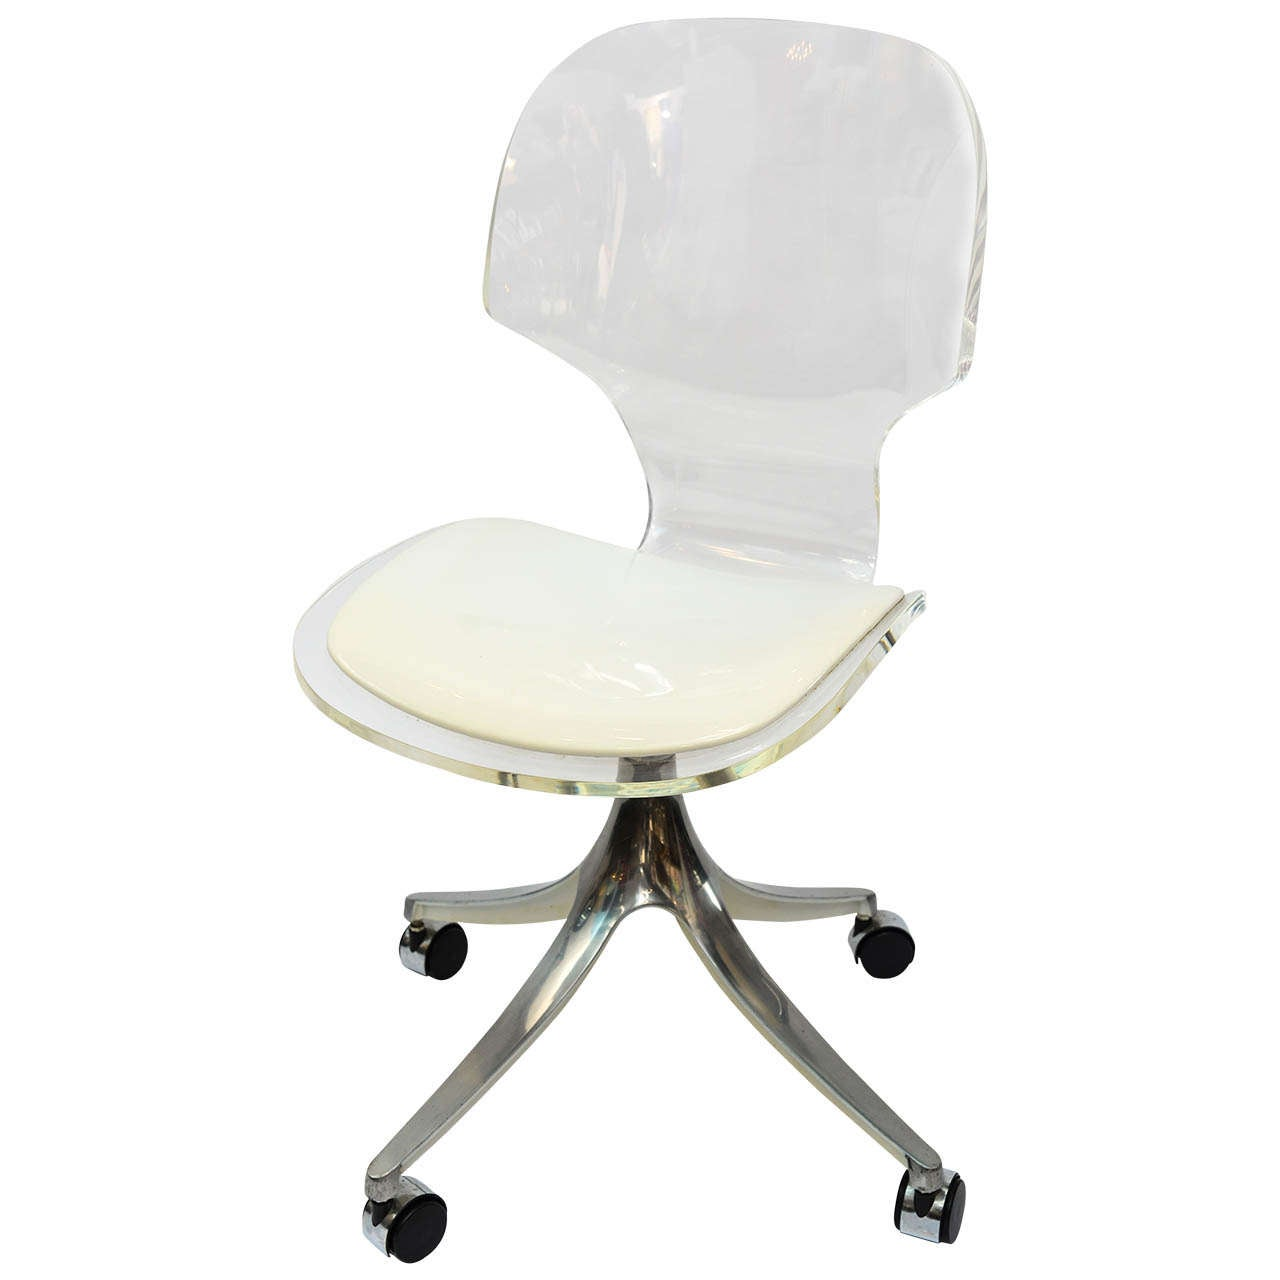 Acrylic Desk Chair Stunning 1960 39s Lucite Desk Chair On Chrome Swivel Base At